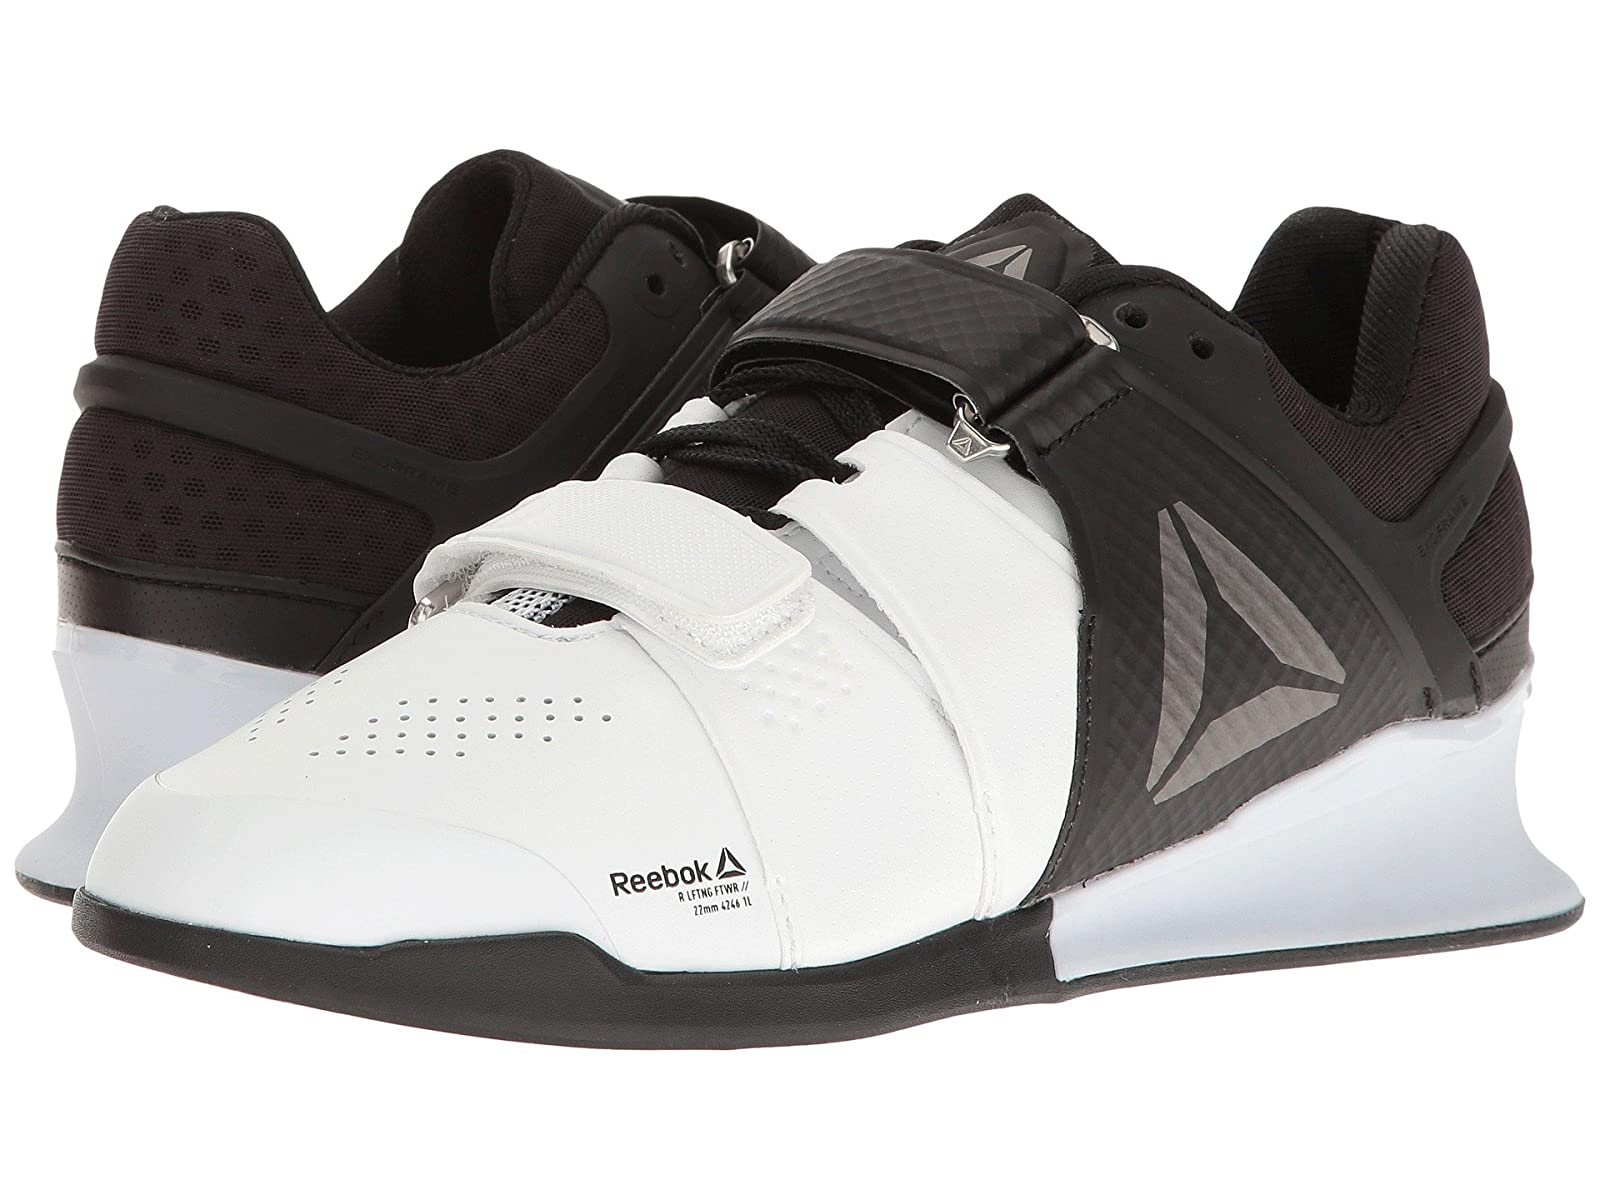 Reebok Legacy LifterAtmospheric grades have affordable shoes